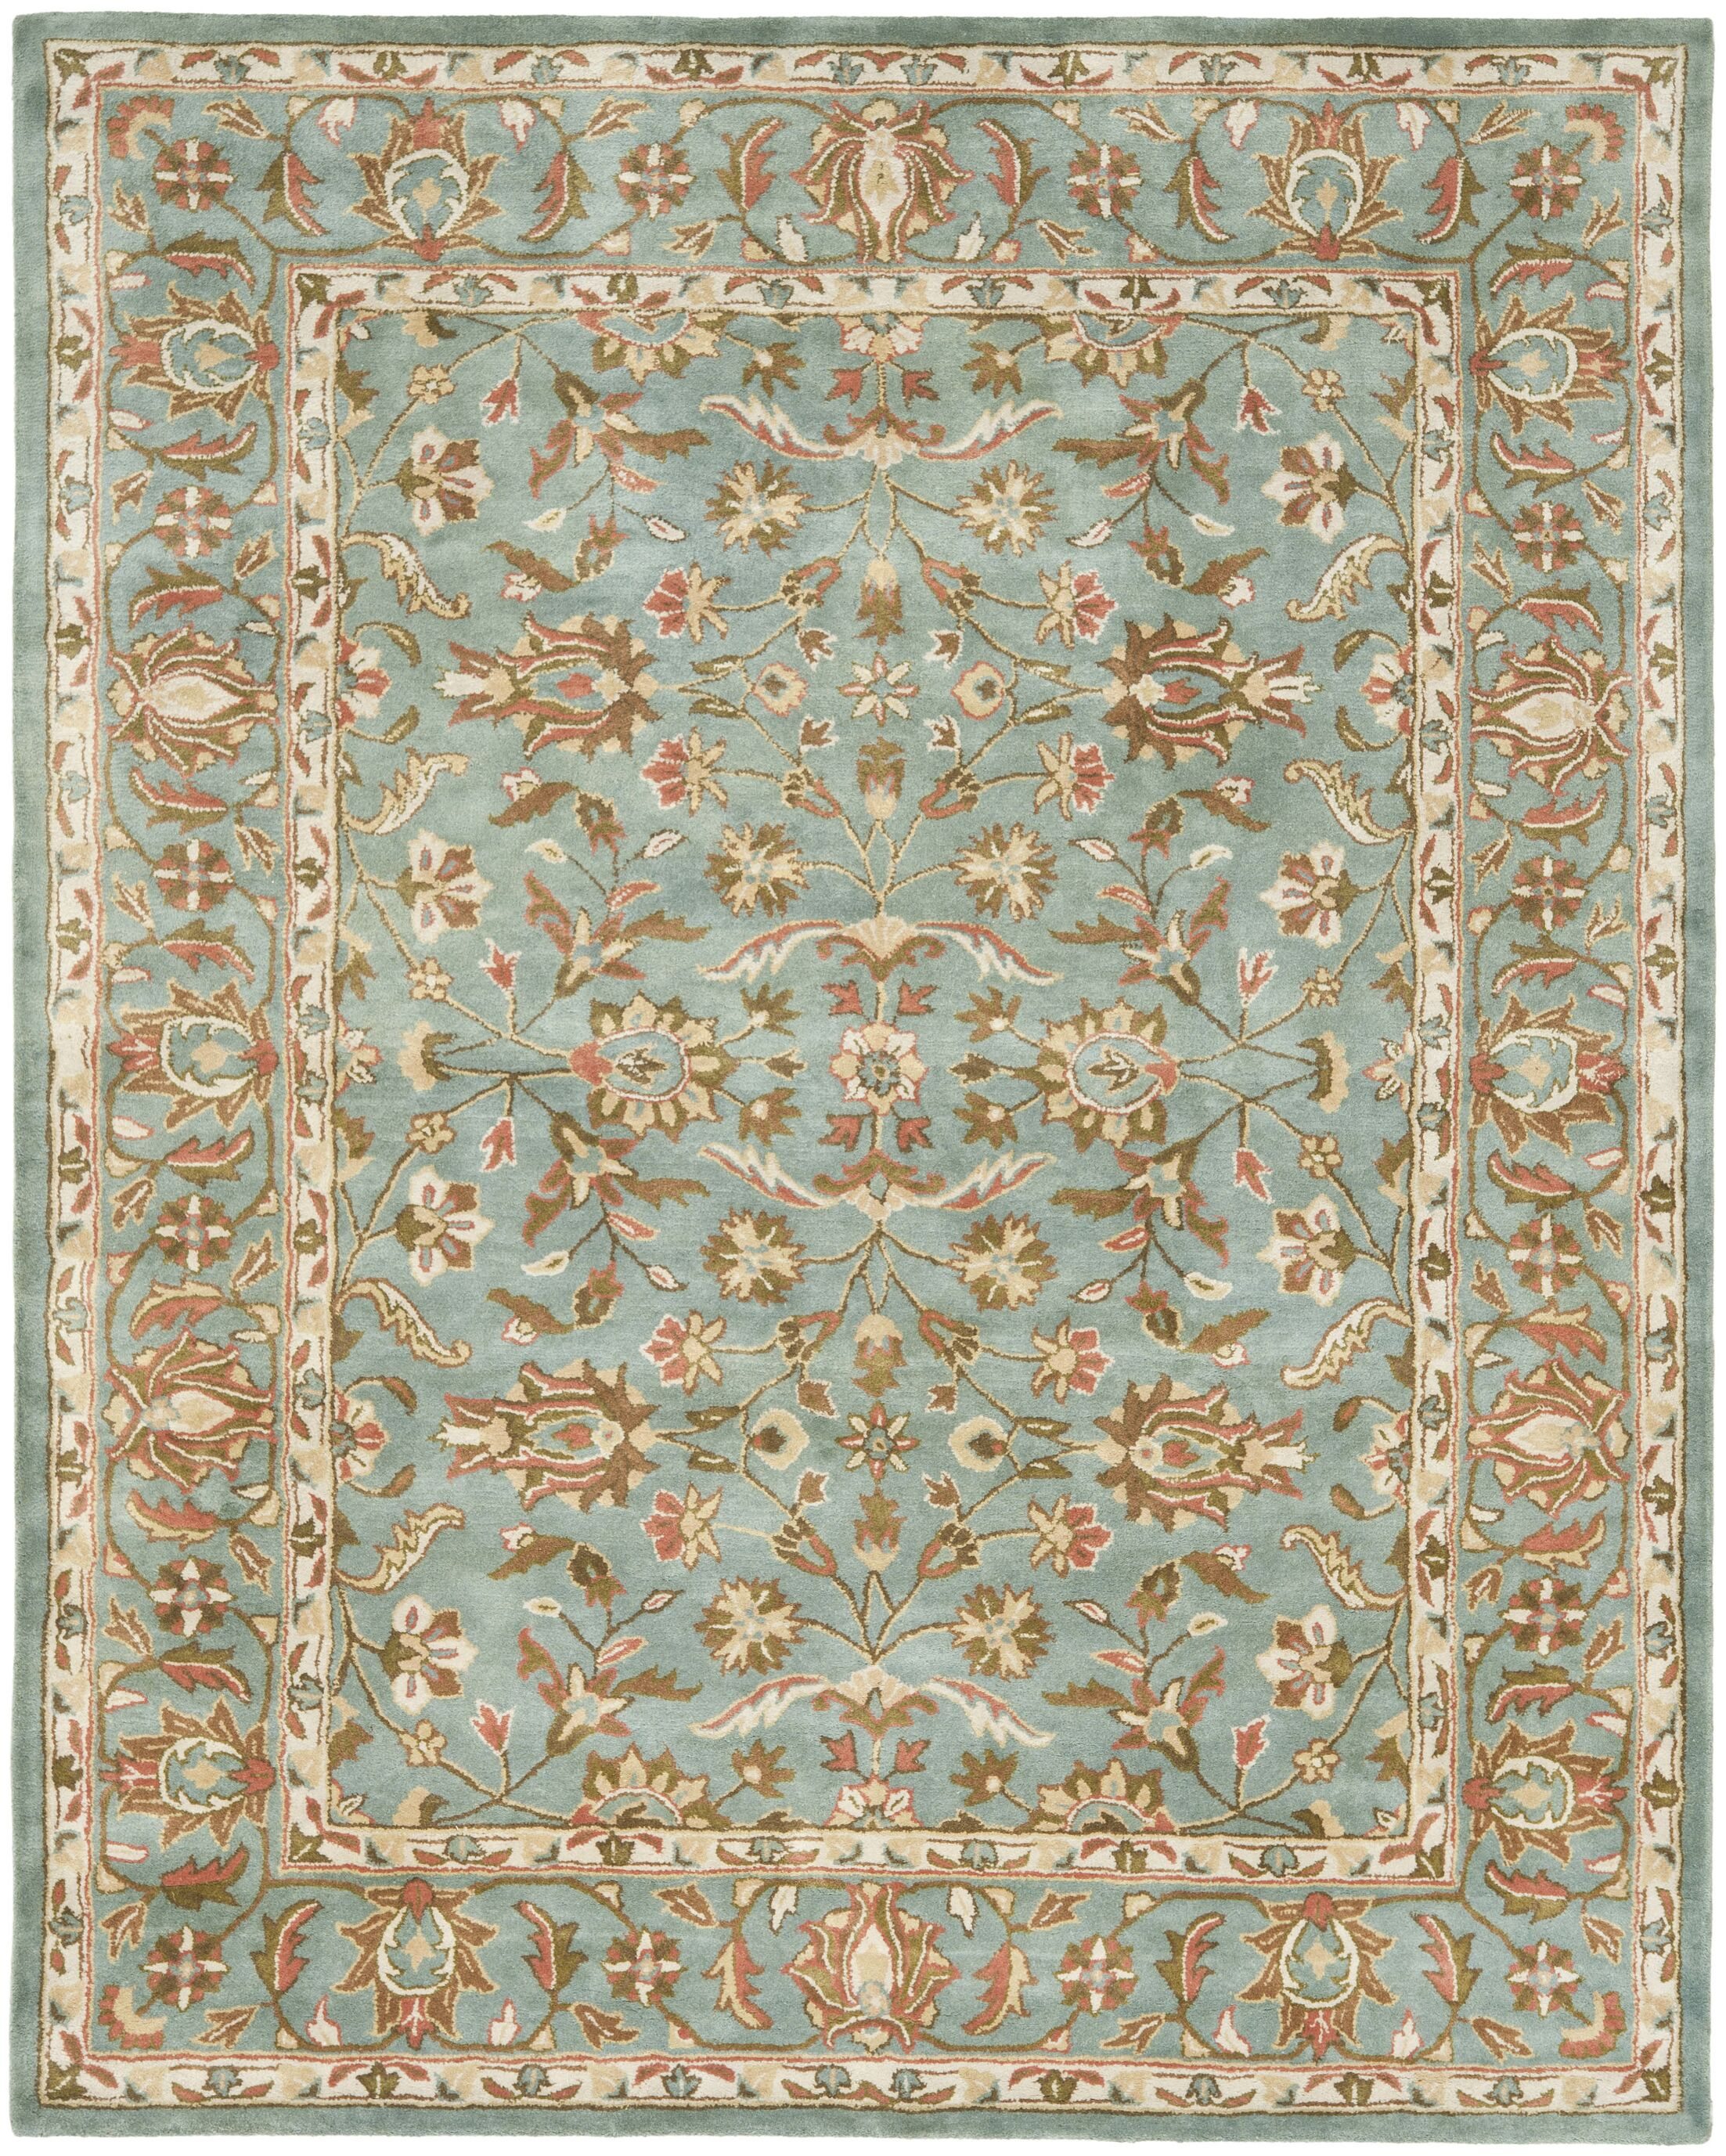 Cranmore Hand-Woven Wool Blue Area Rug Rug Size: Rectangle 11' x 17'